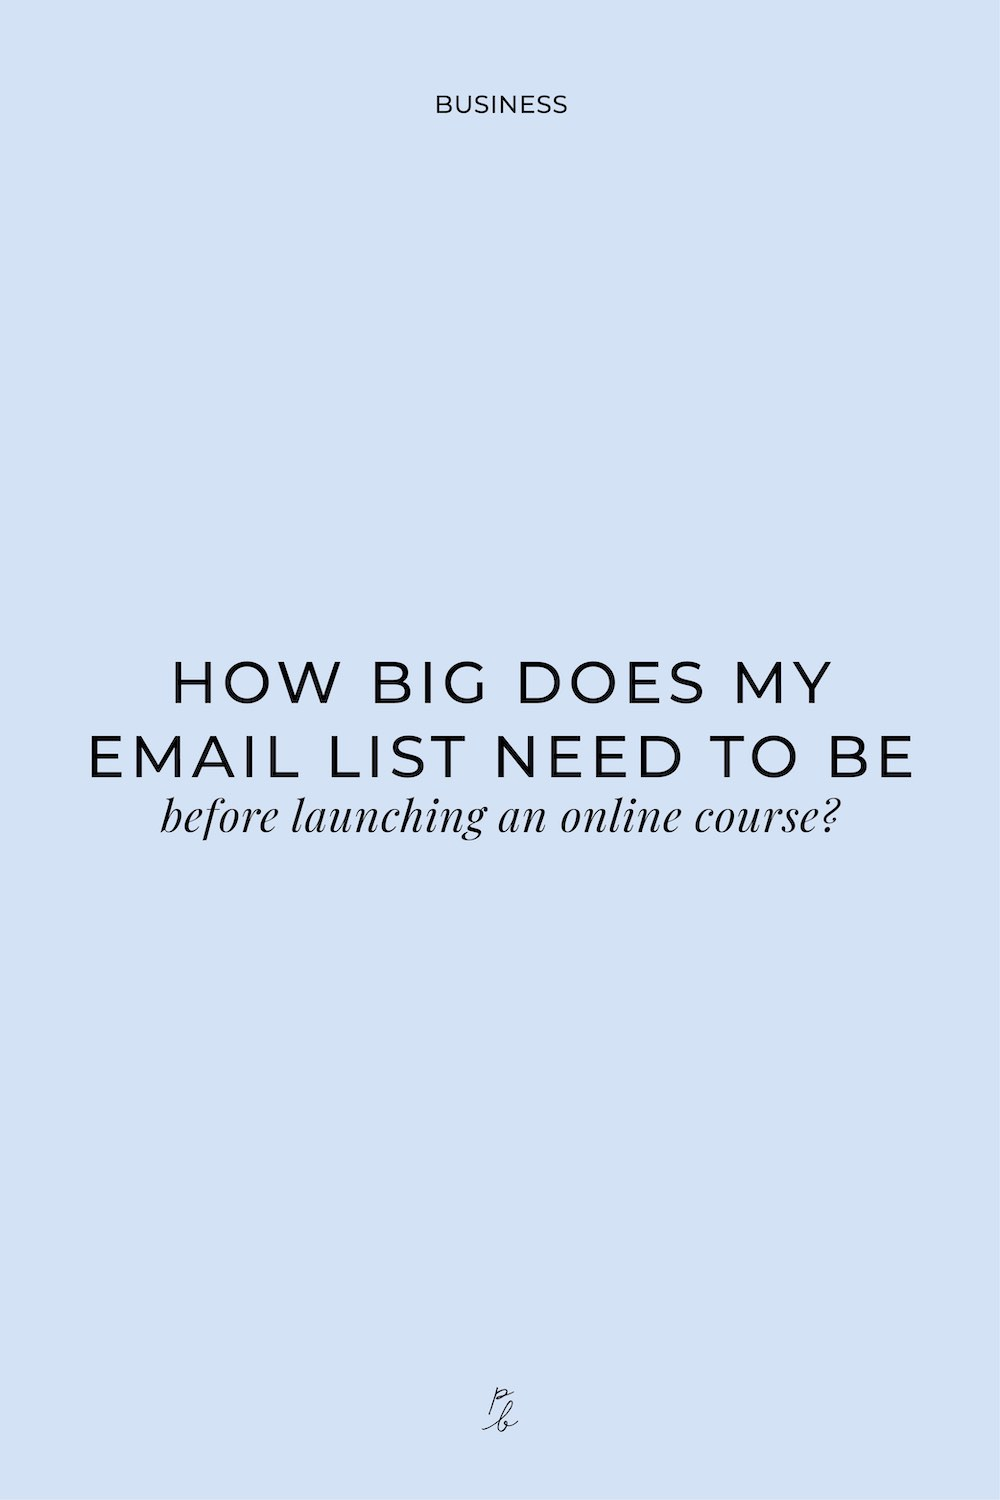 2-How big does my email list need to be before launching an online course?.jpg